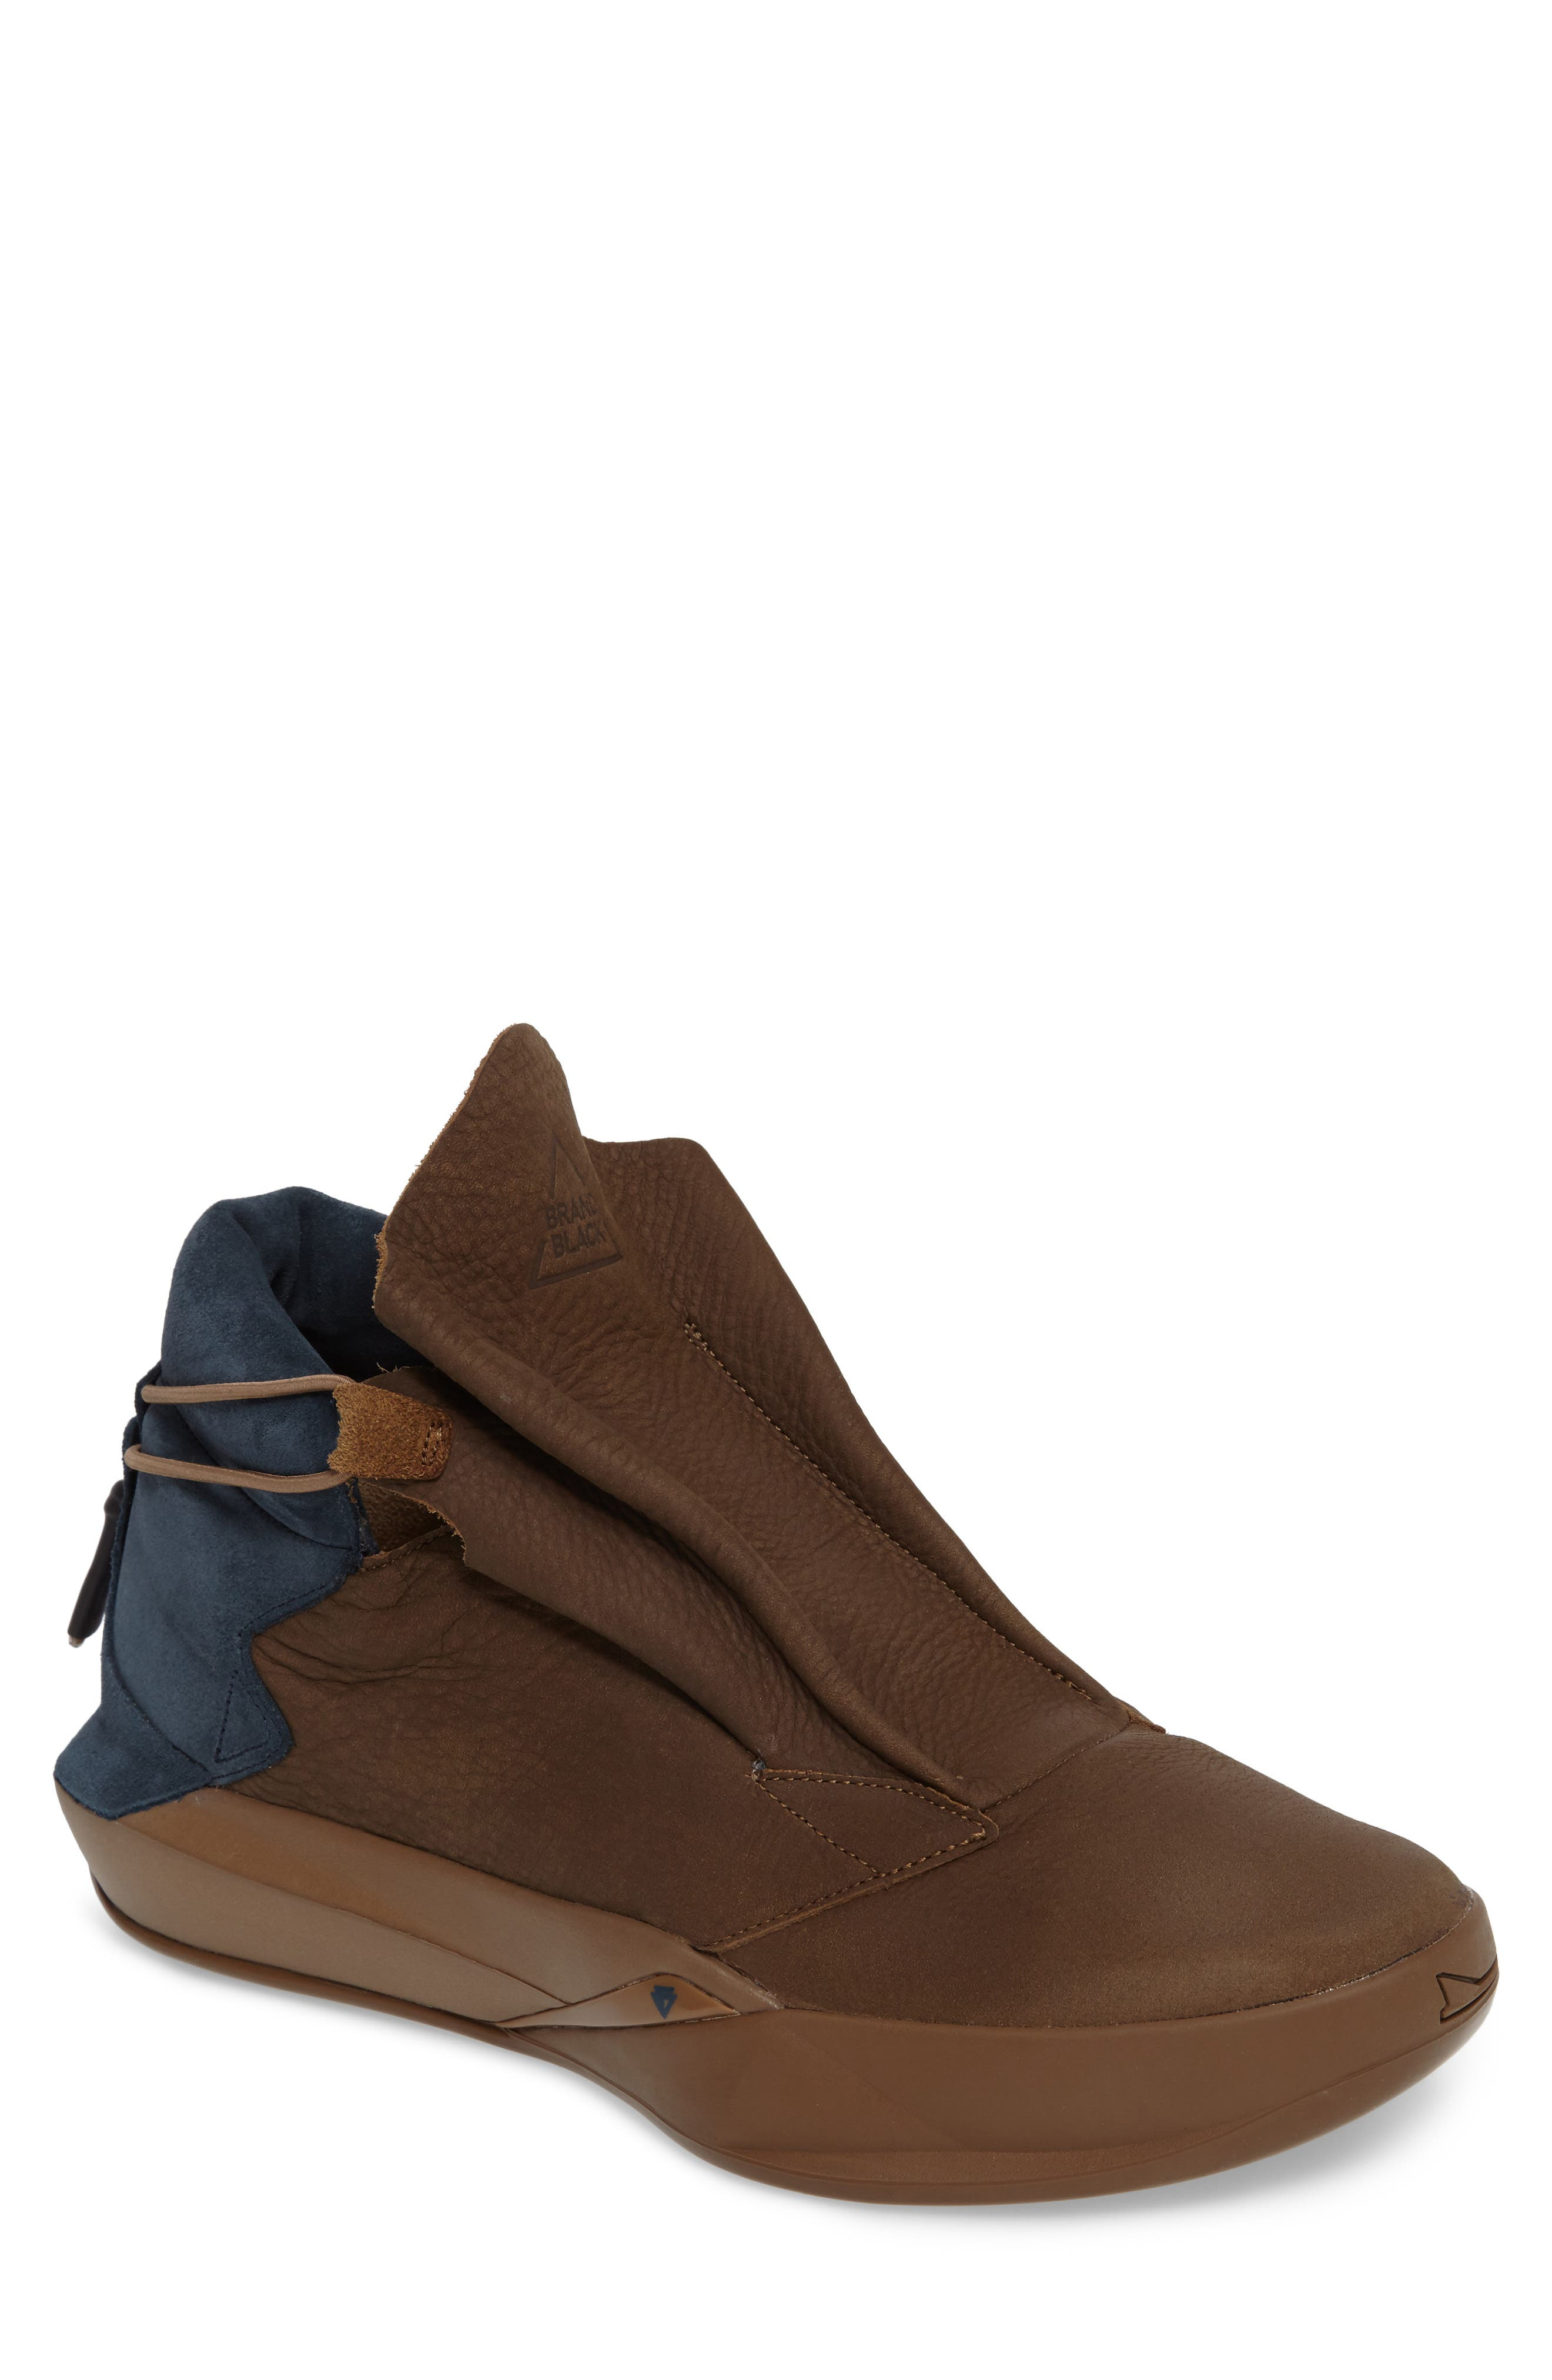 Future Legend Boot,                         Main,                         color, Brn -Brown